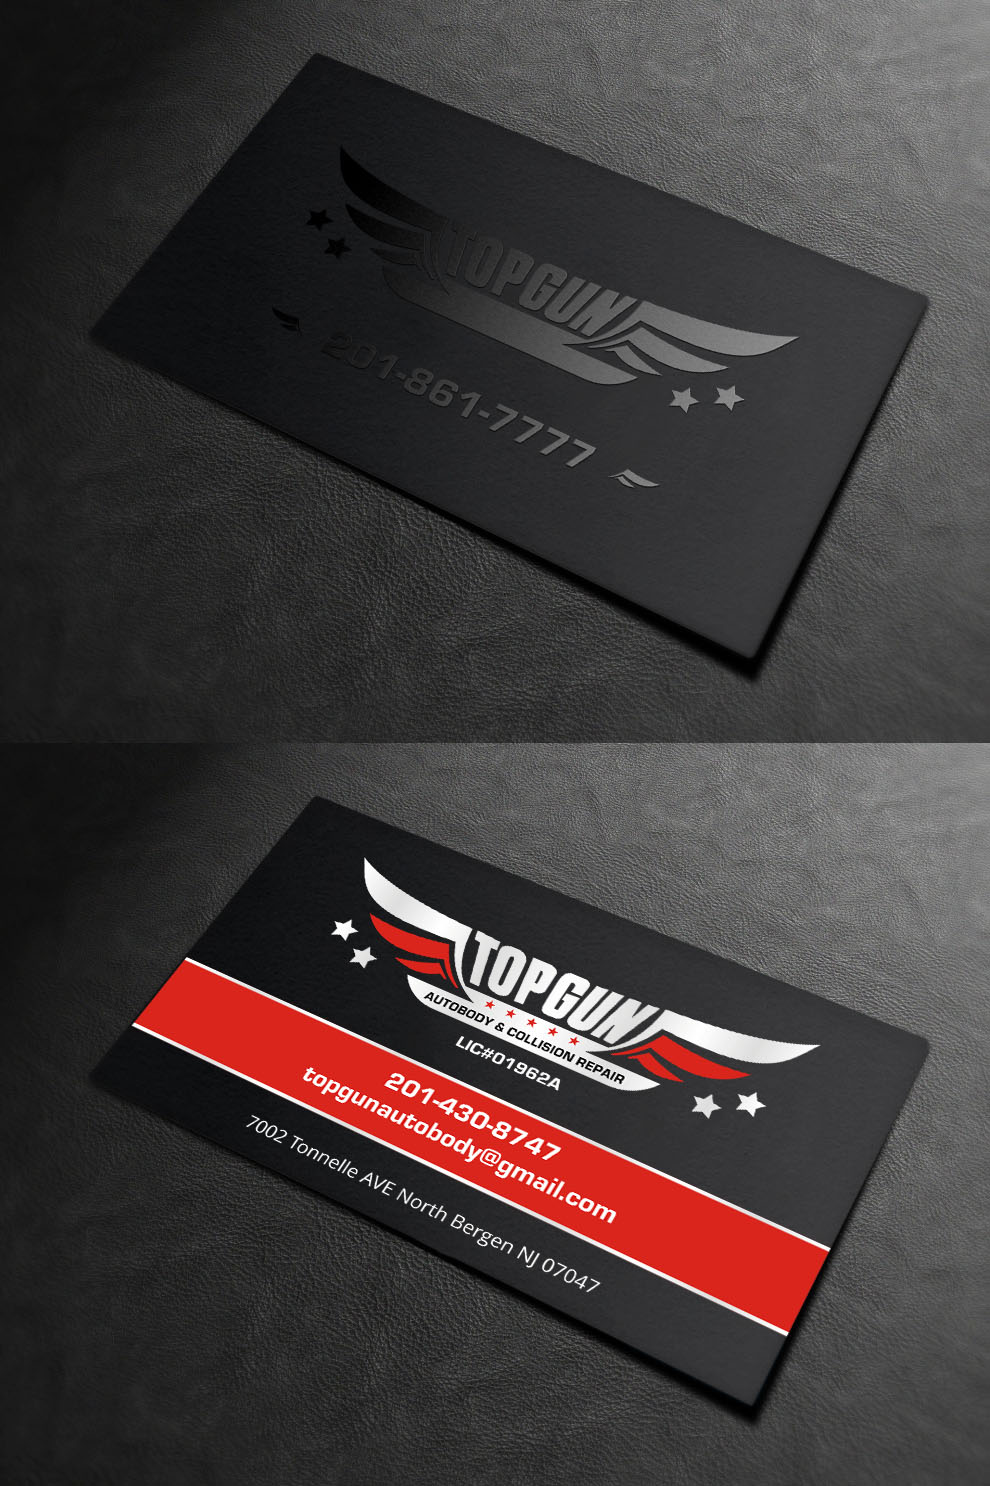 Bold serious business business card design for topgun autobody and bold serious business business card design for topgun autobody and towing in united states design 17745605 colourmoves